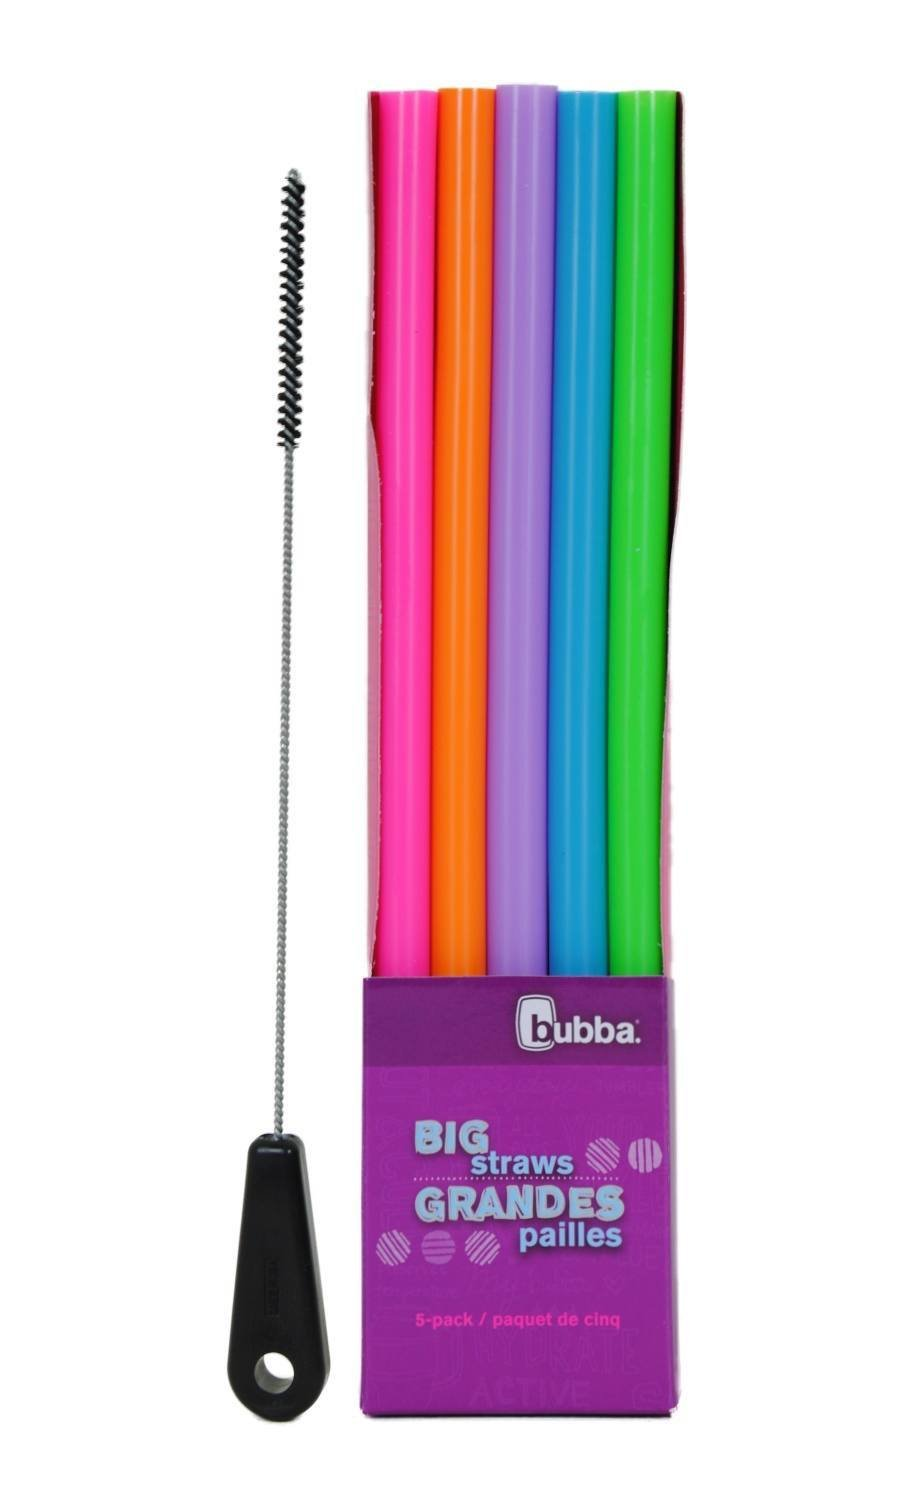 Bubba Big Straw 5 Pack Assorted Classic Colors with Brushtech Big Straw Cleaning Brush Set